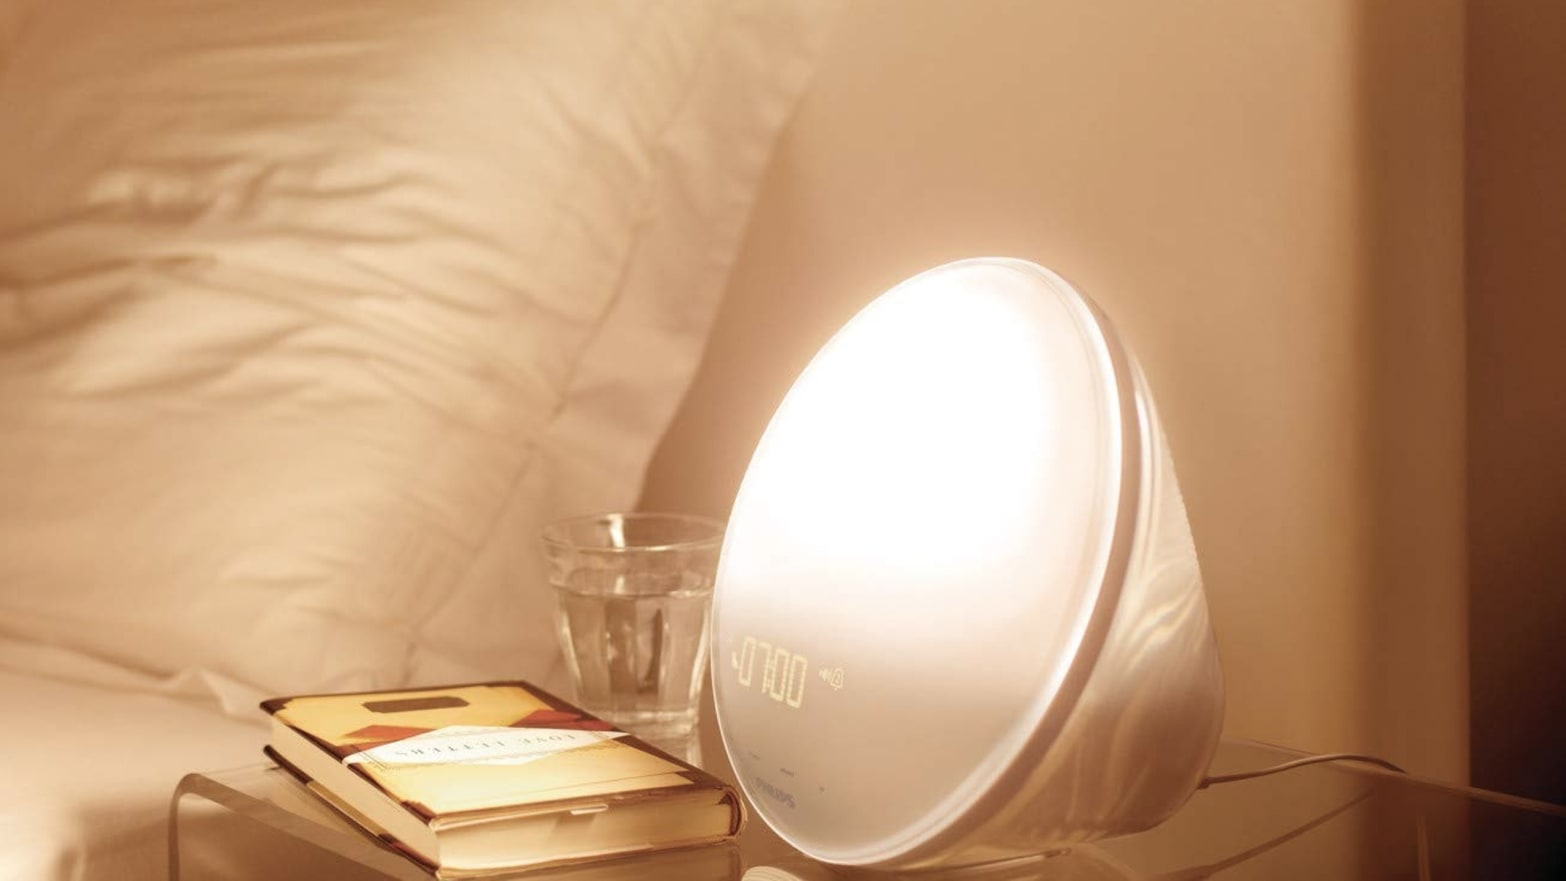 Wake Up Light Reviews and Buying Guide by www.snoremagazine.com